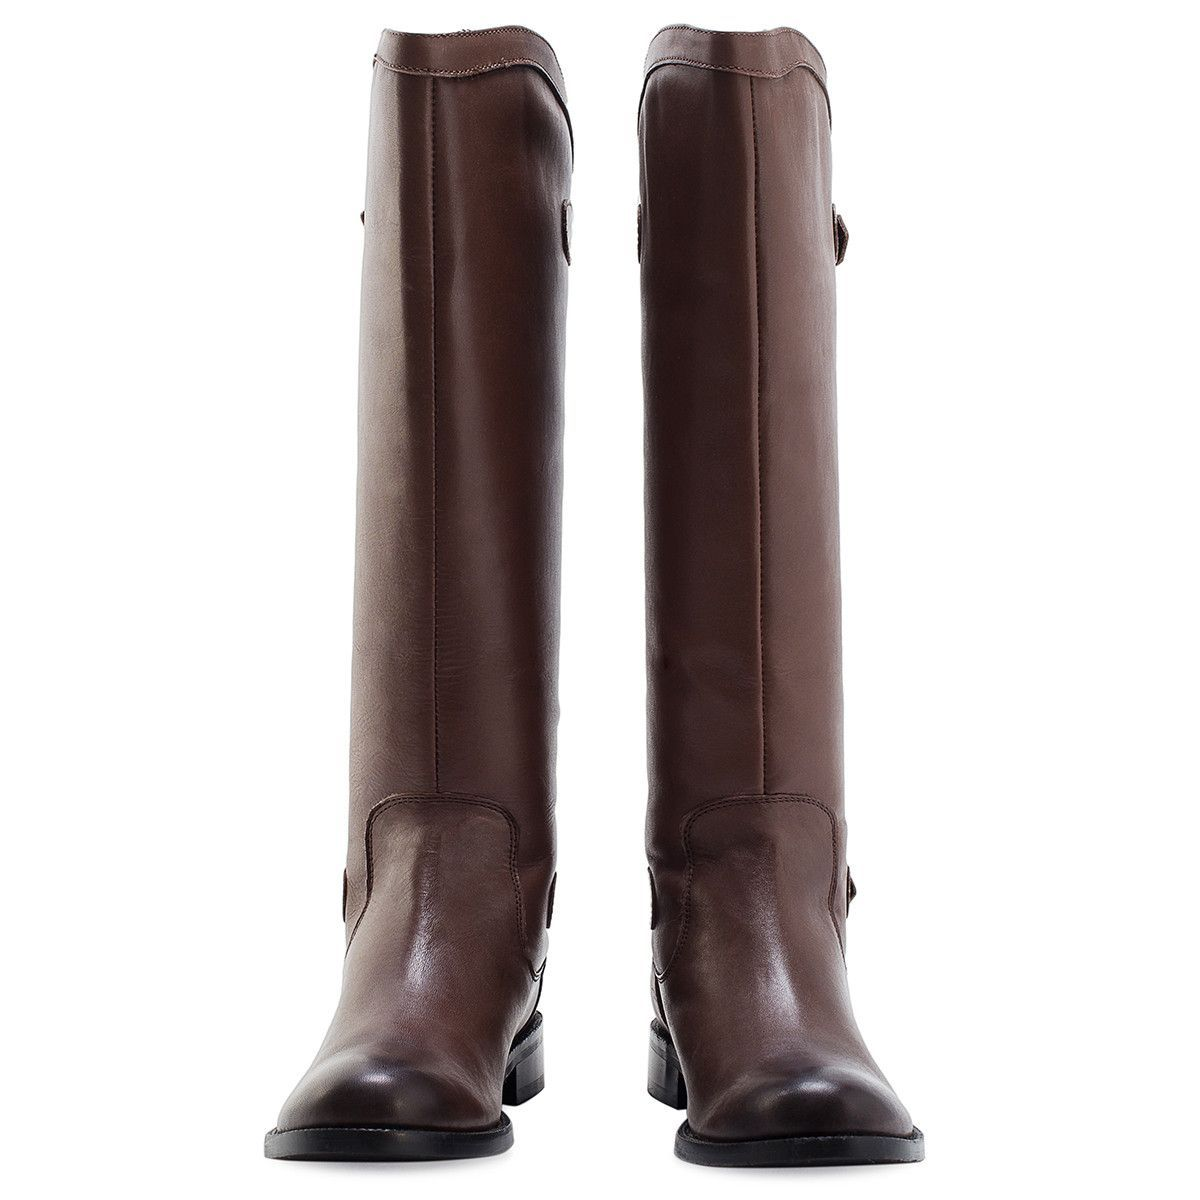 Redfoot Footwear UK 3 / EURO 36 / US 5 / Brown / Leather LADIES BROWN TWINZIP RIDING BOOT